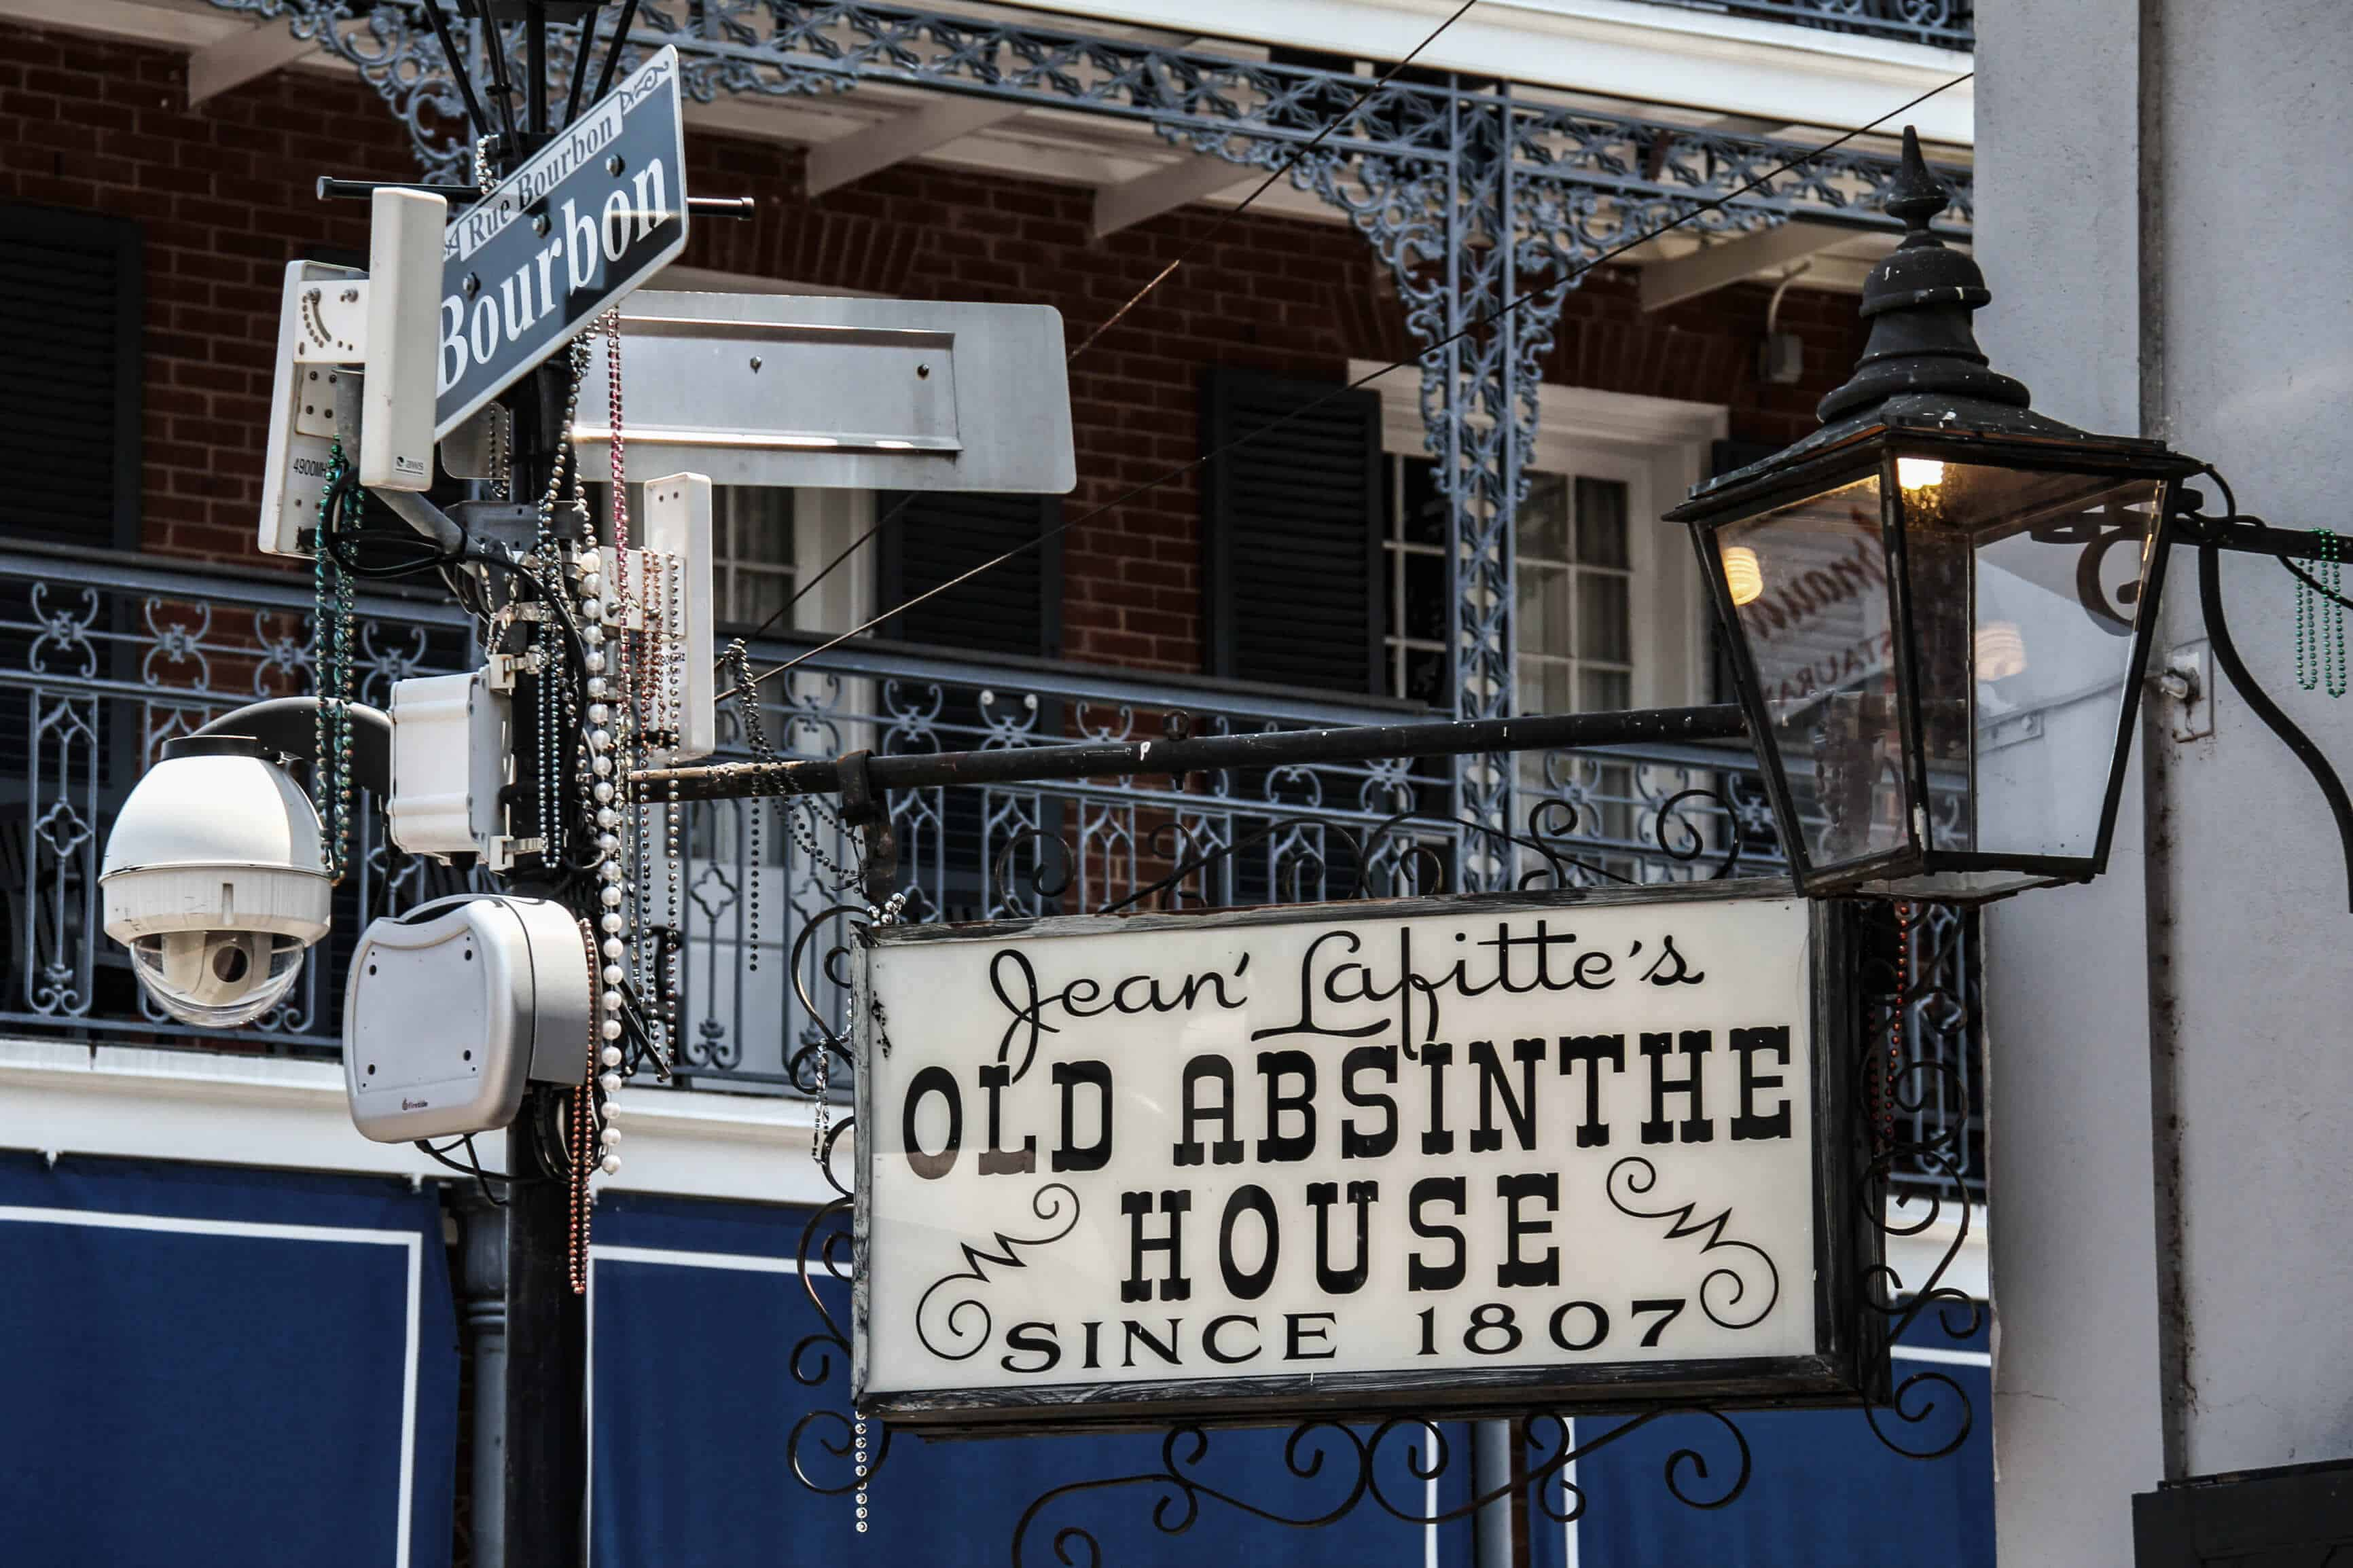 Jean Lafitte's Old Absinthe House sign in New Orleans